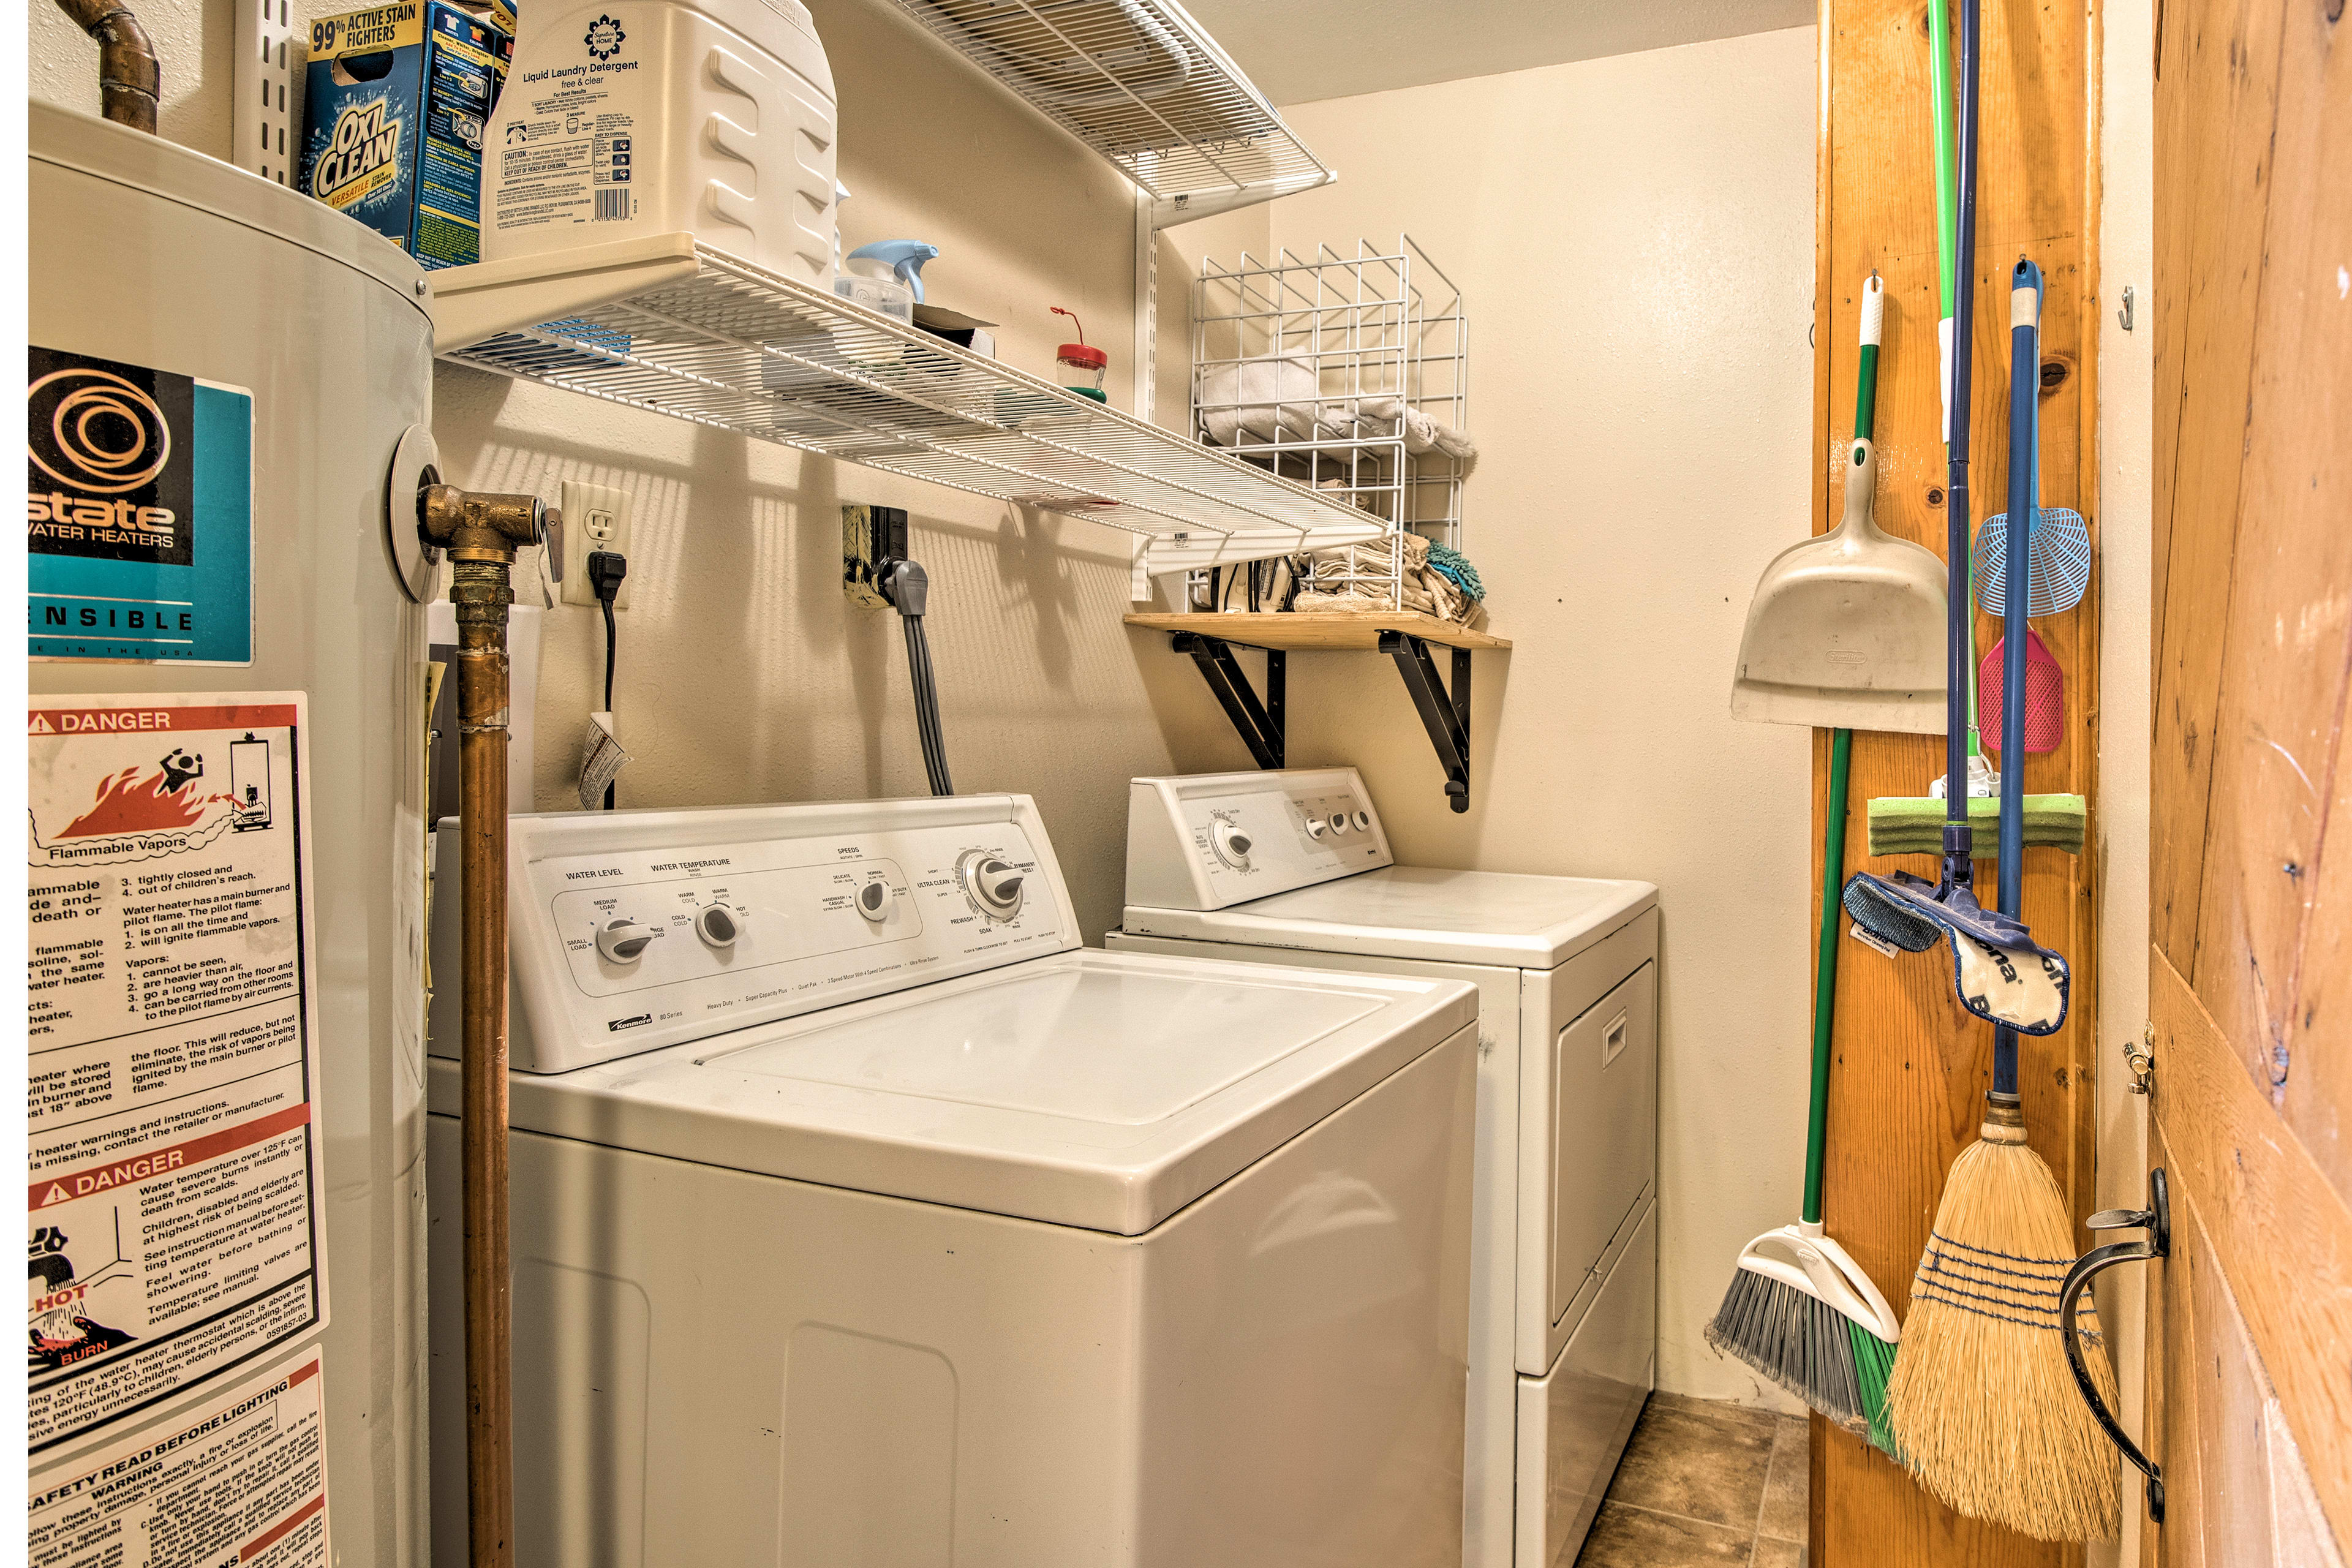 Wash your dirty duds in the laundry machines.